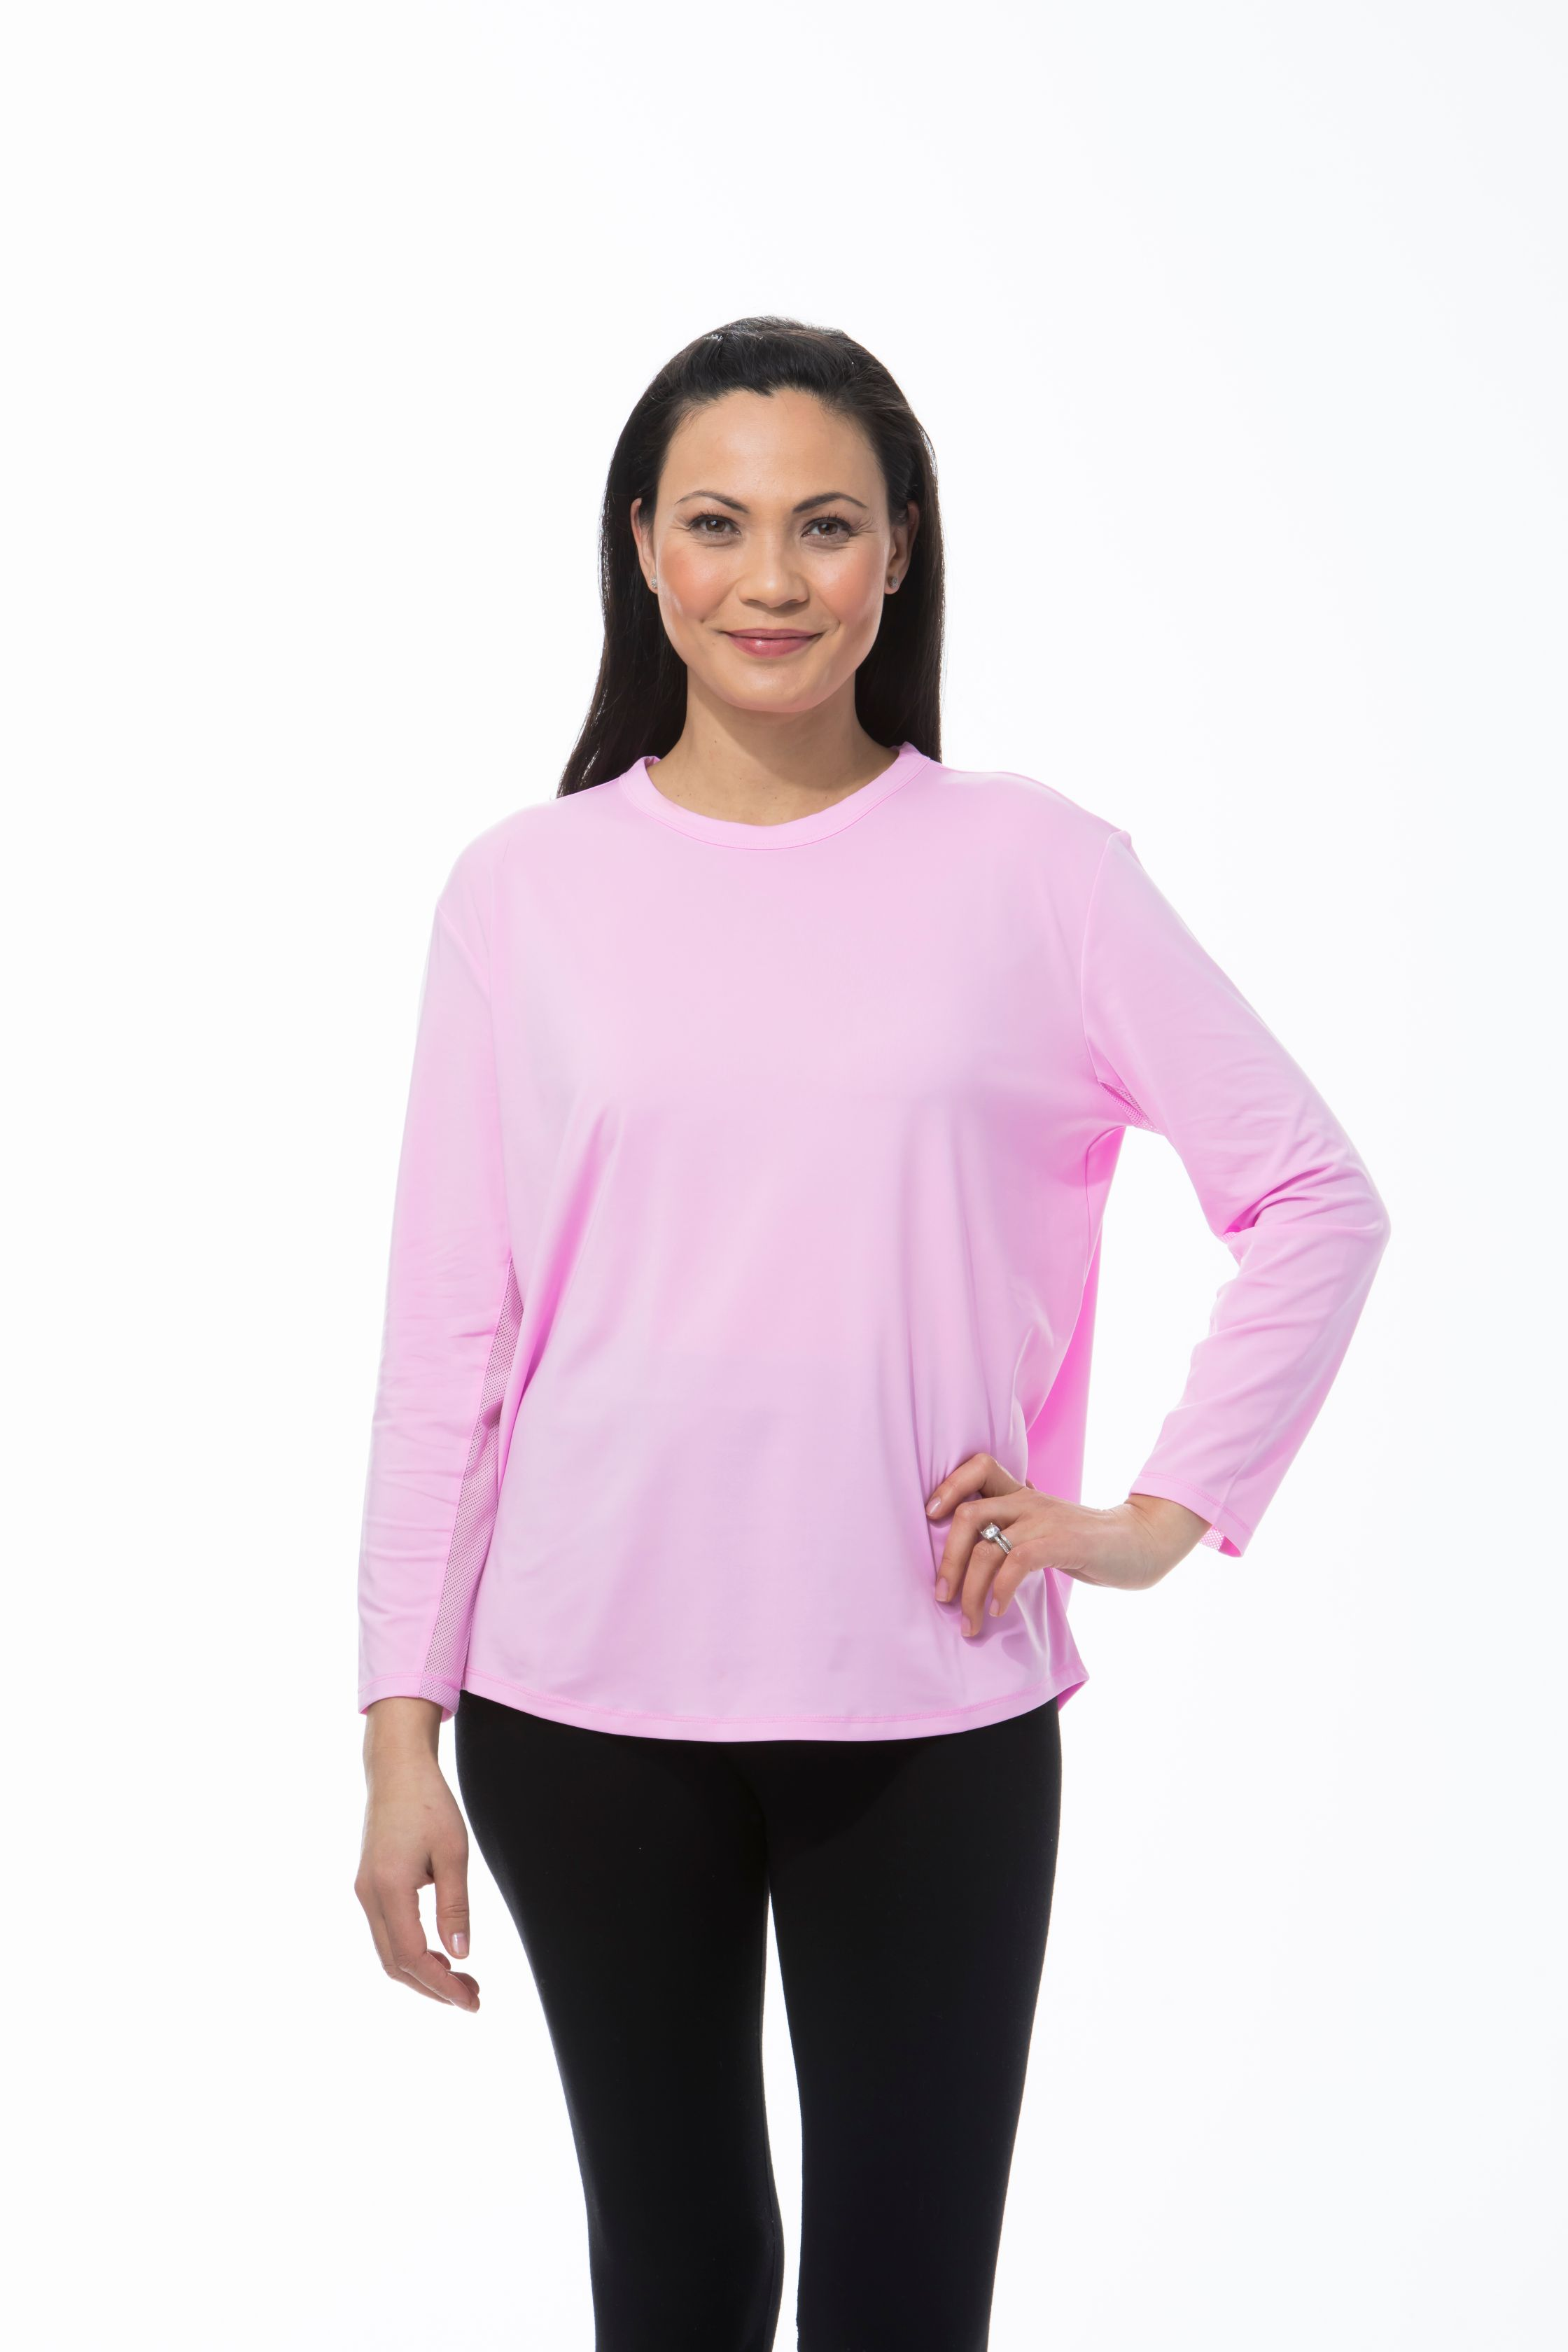 SANSOLEIL SUNGLOW RELAXED TEE. PINK. 900730